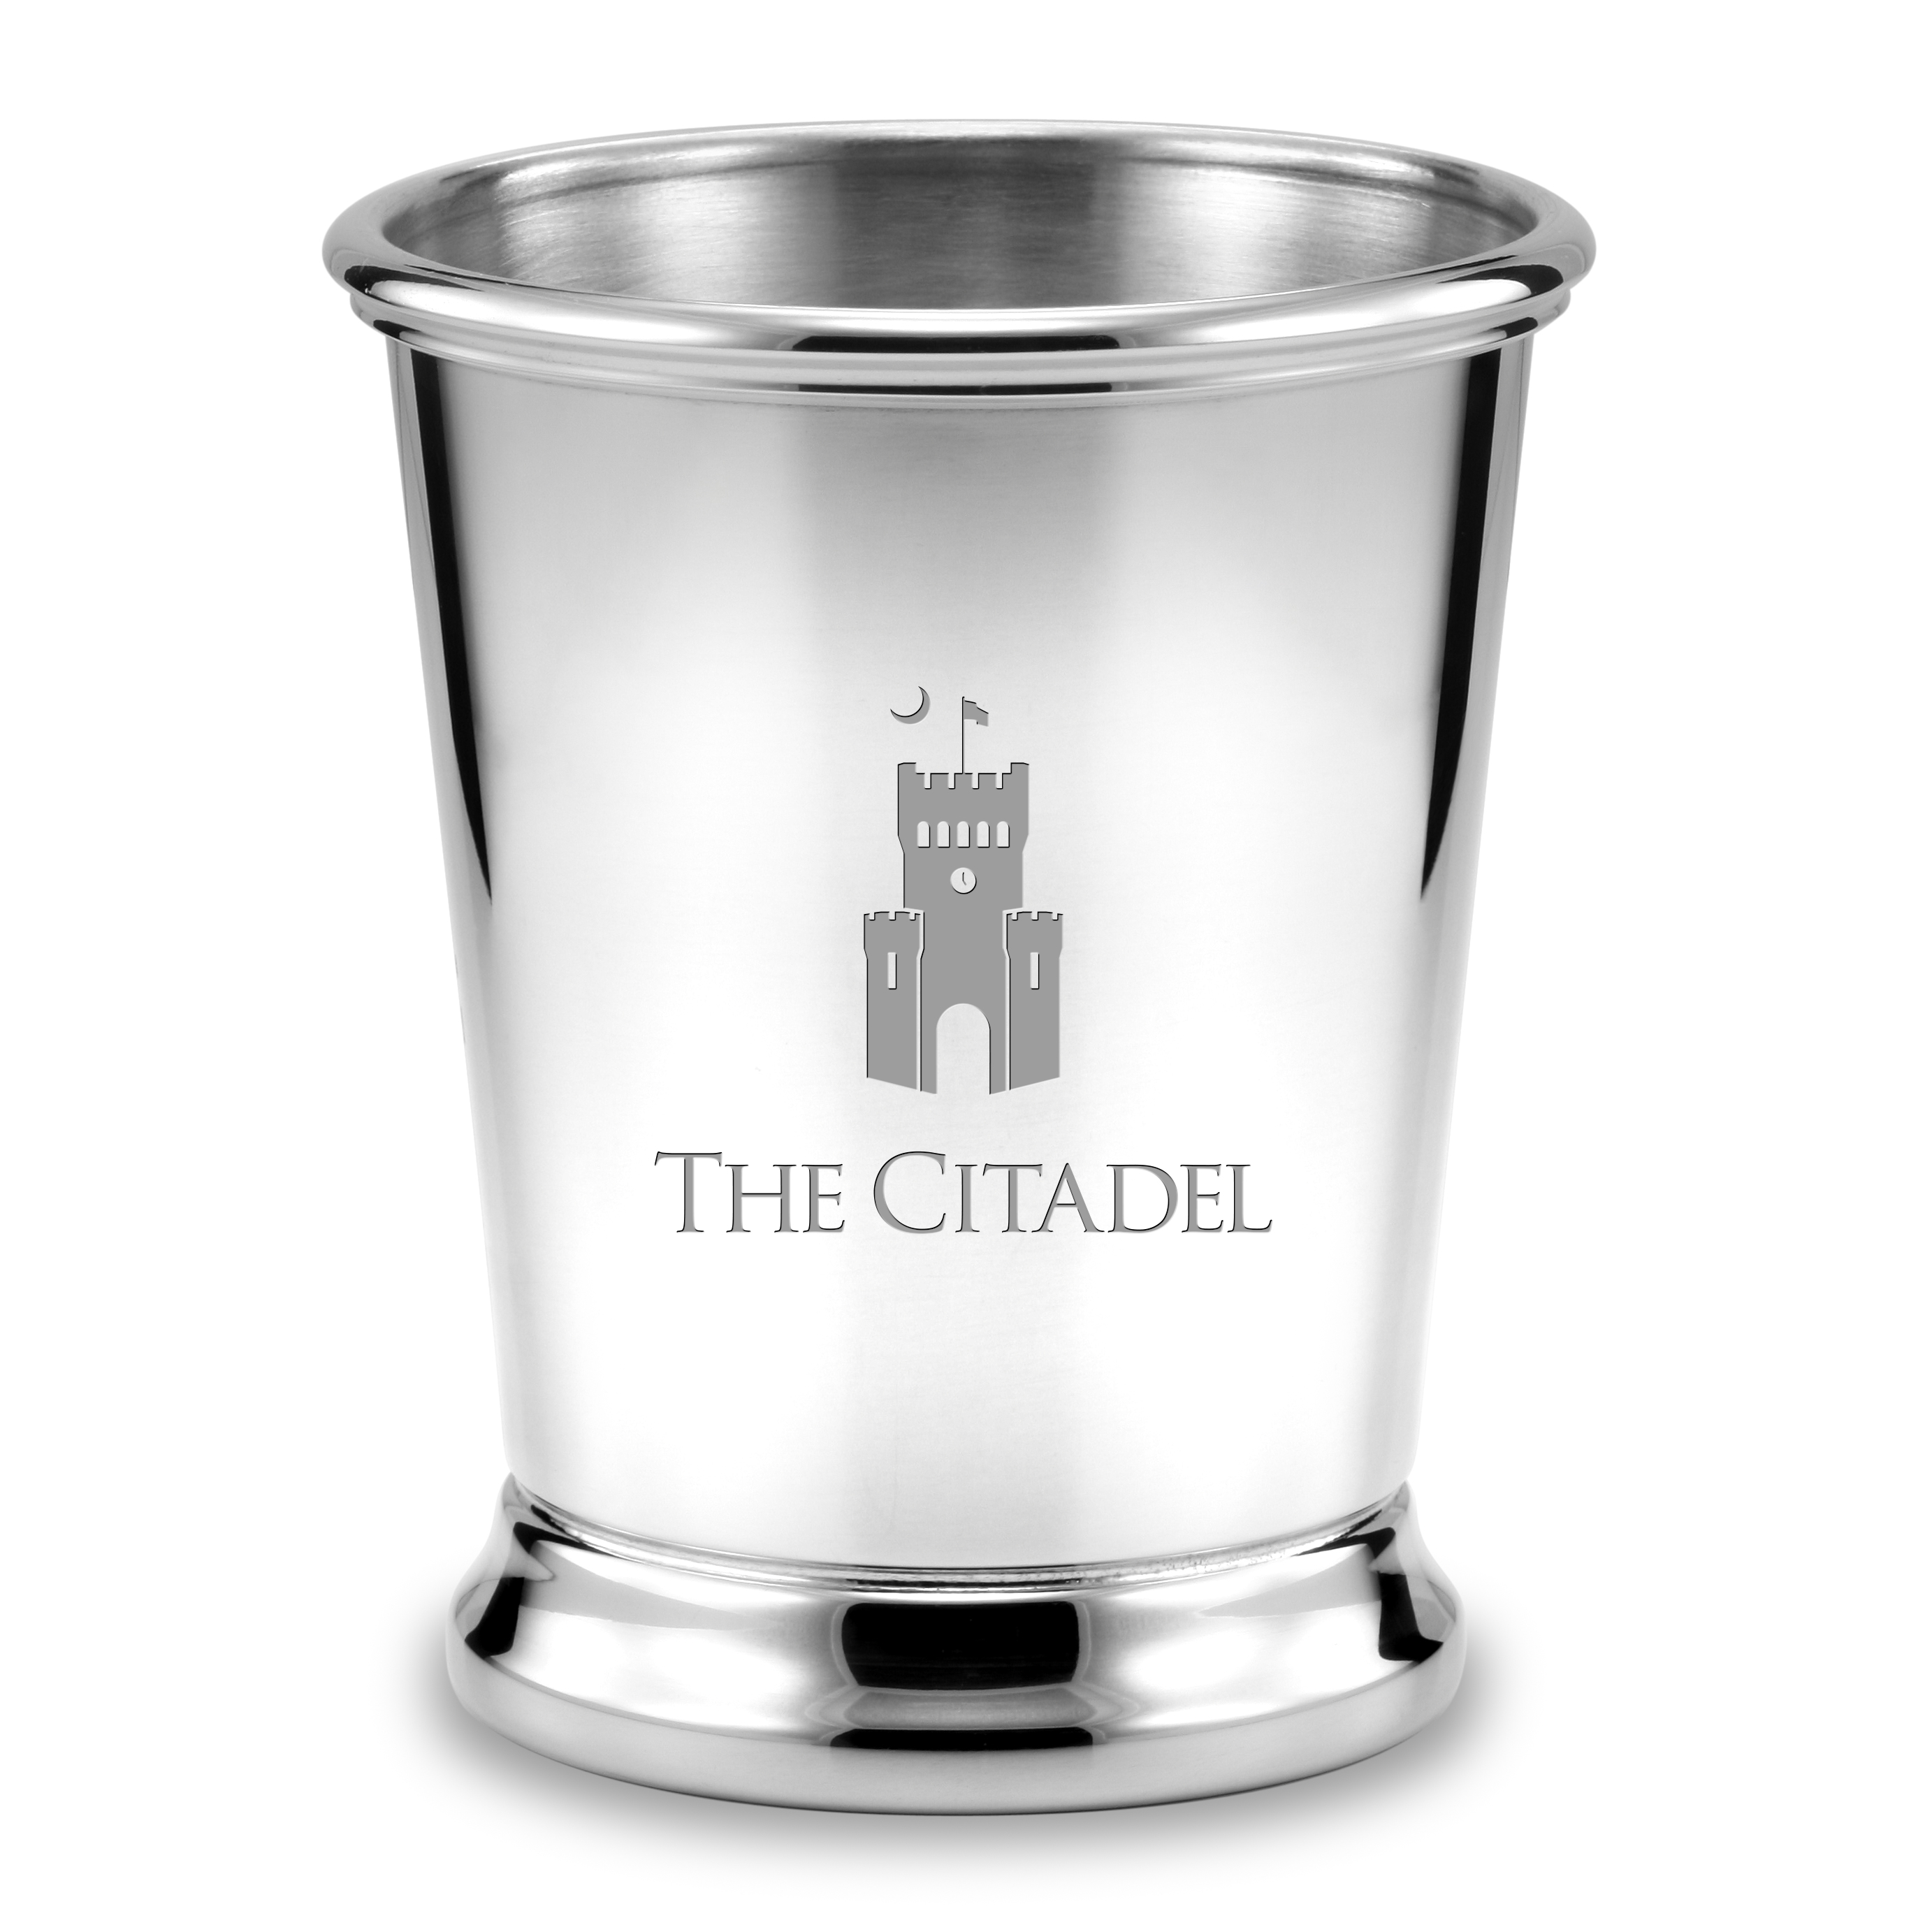 Citadel Pewter Julep Cup - Image 2